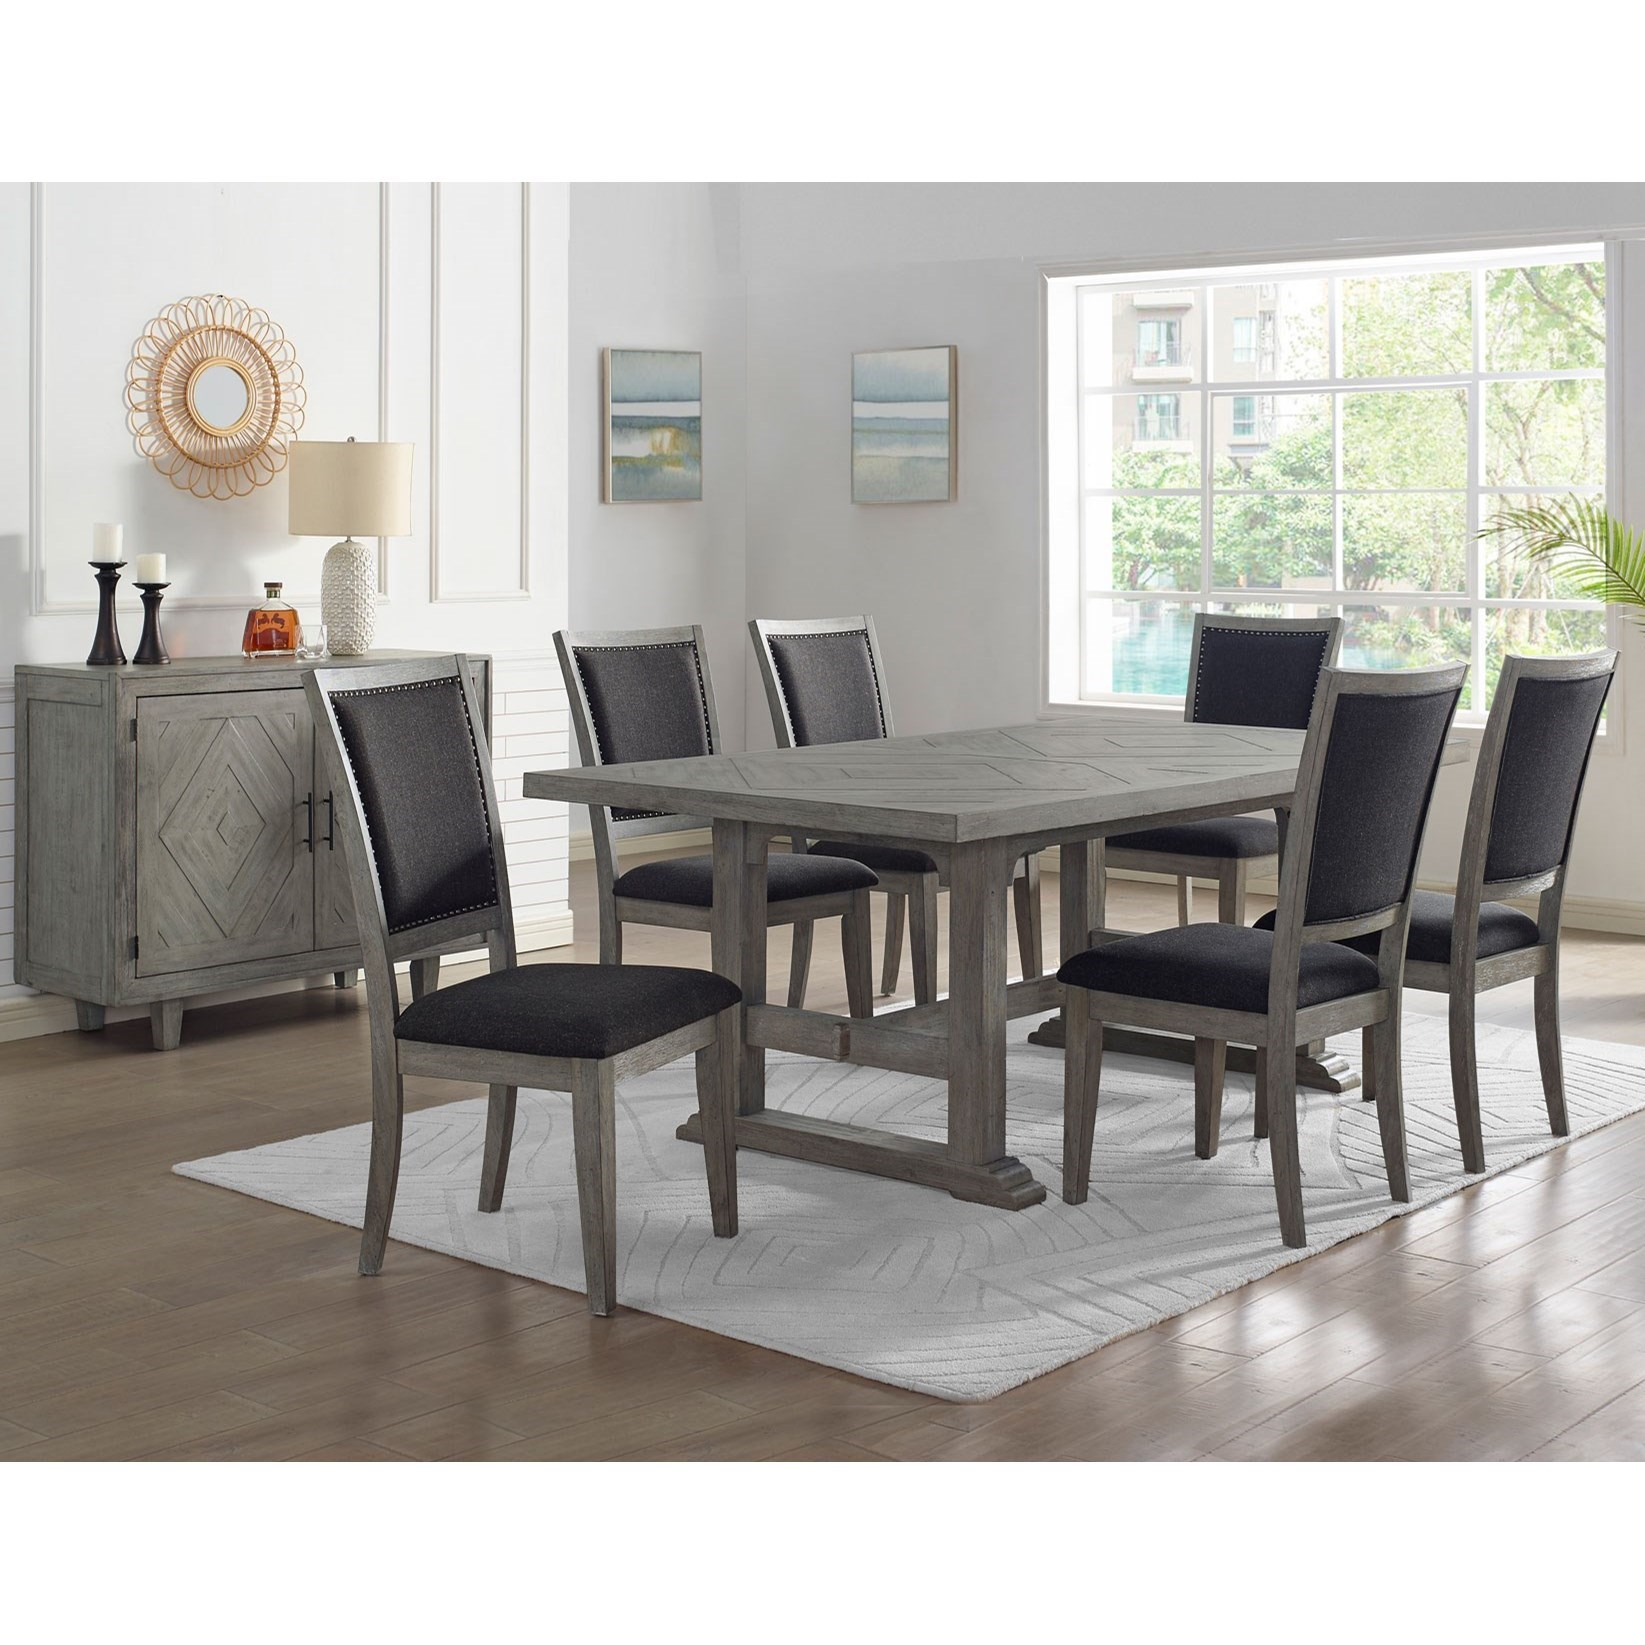 Whitford Dining Room Group by Steve Silver at Northeast Factory Direct